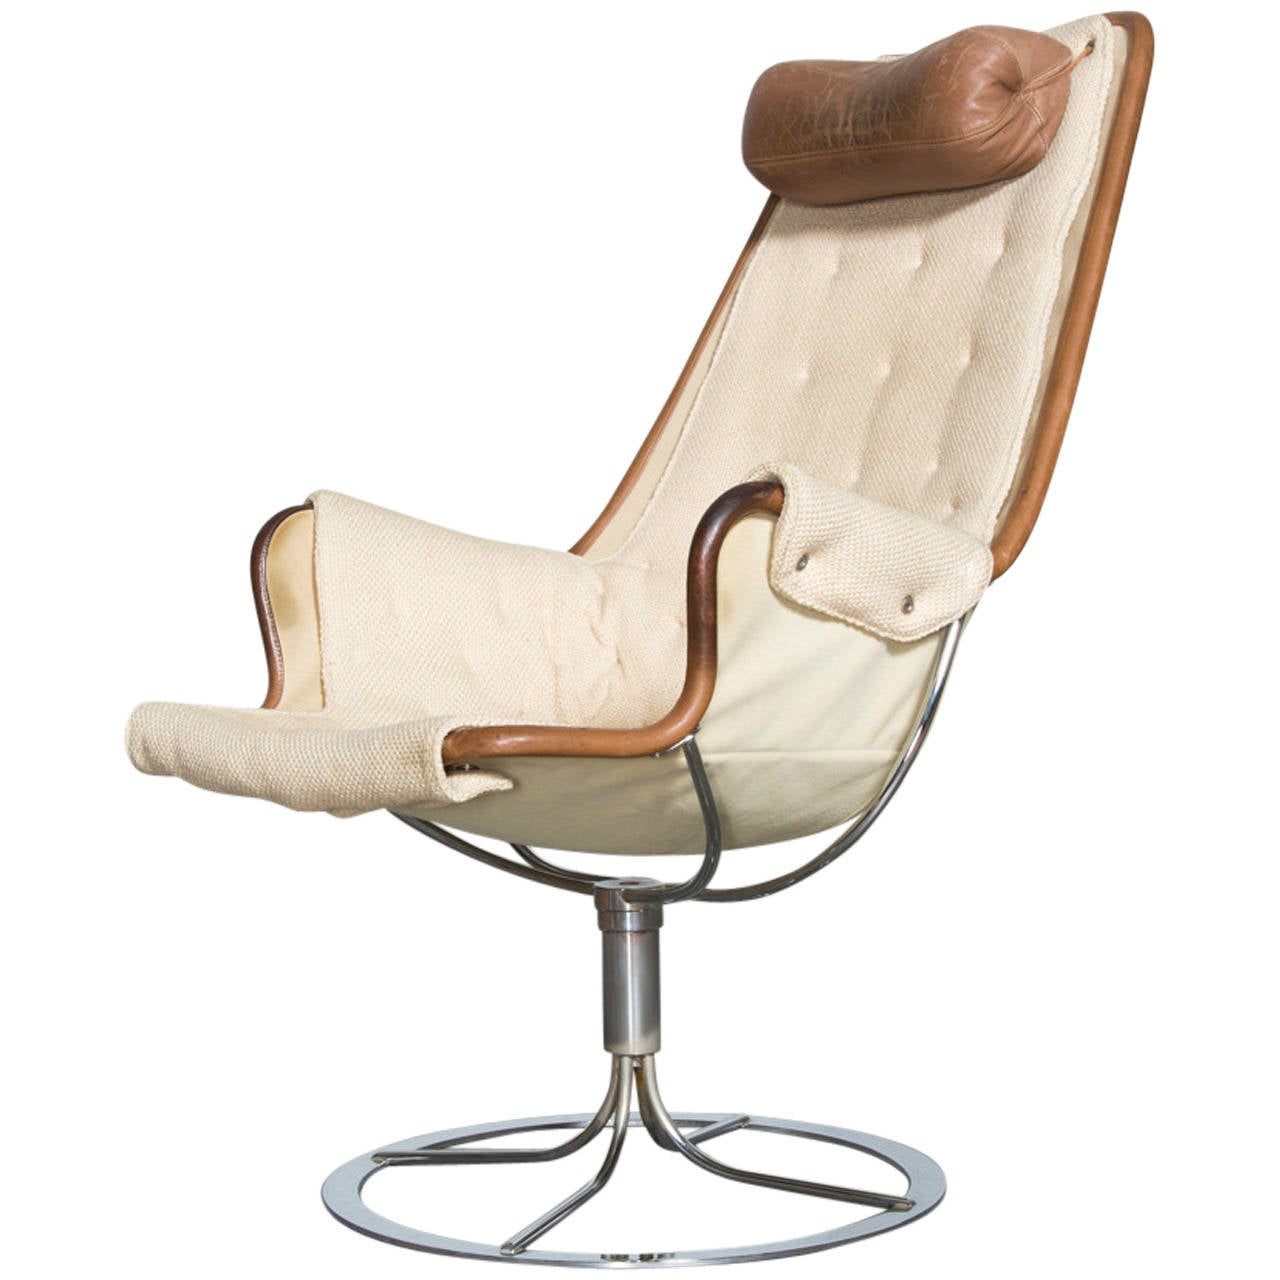 Beau Bruno Mathsson Faolj Jetson For Dux Lounge Chair For Sale